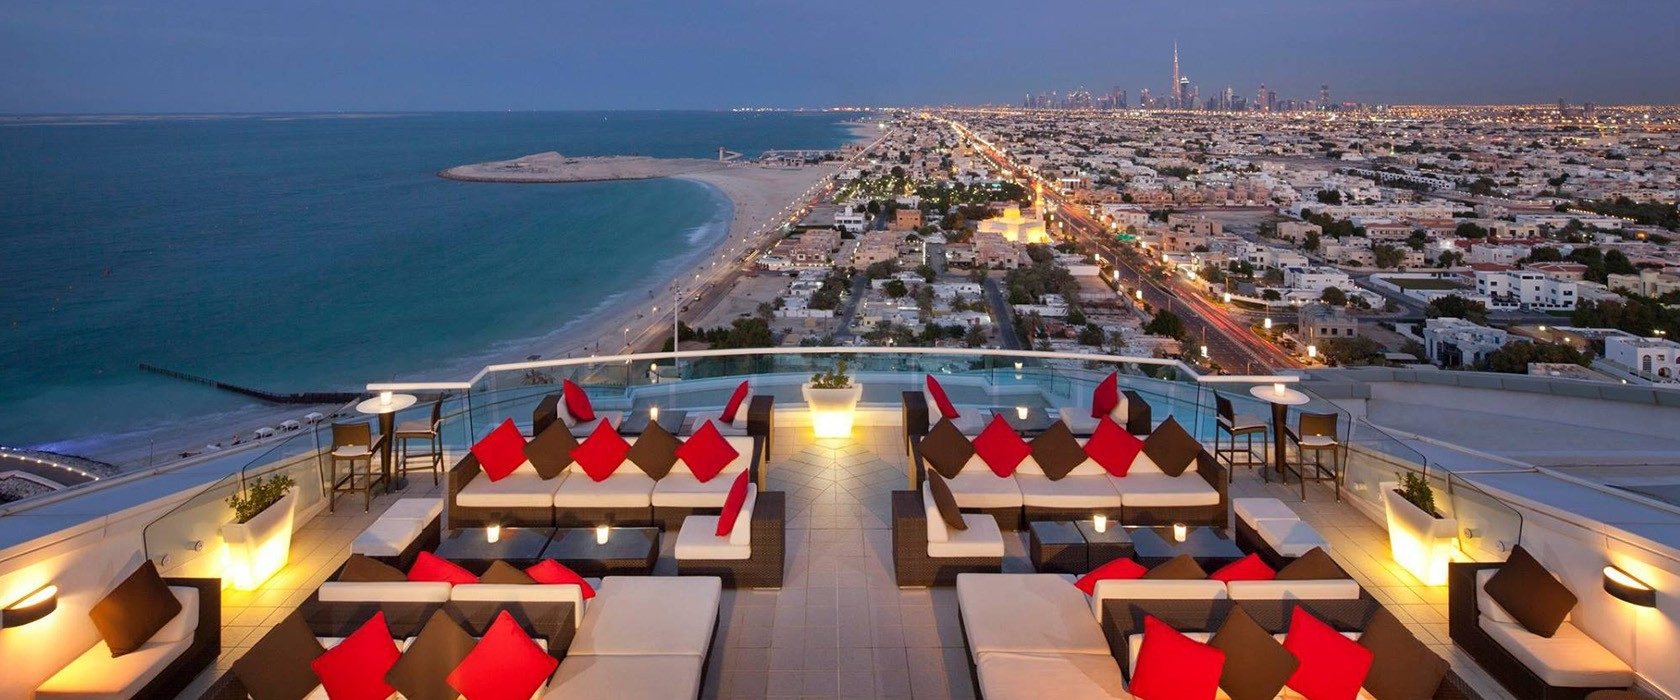 8 amazing rooftop bars in Dubai